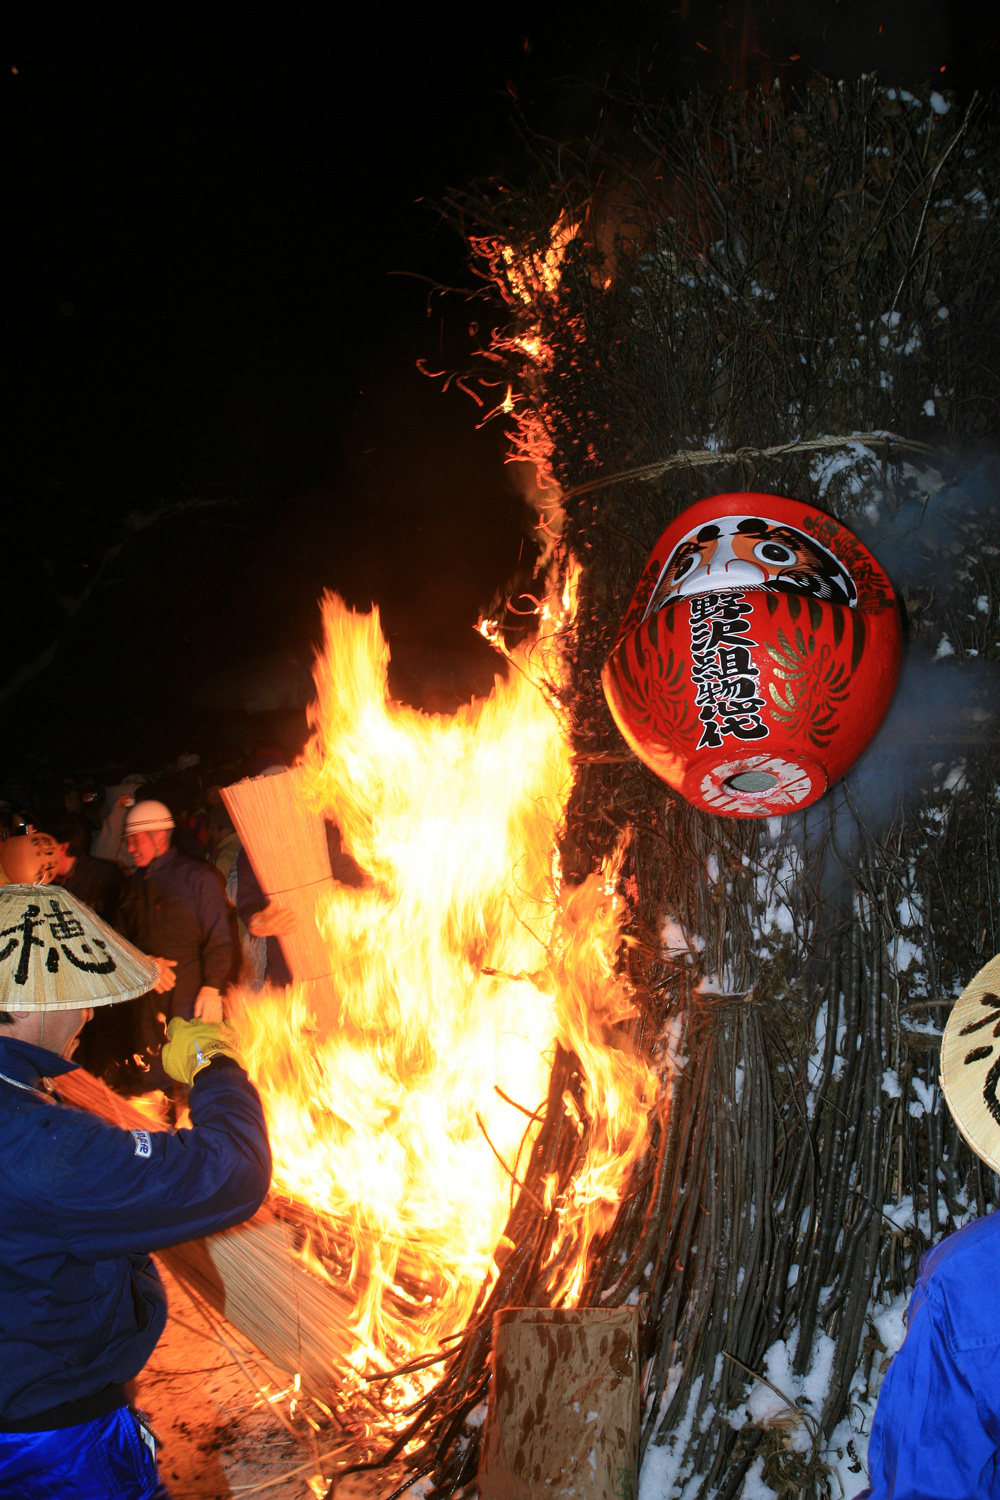 fire_festival_nozawa_photo12.jpg